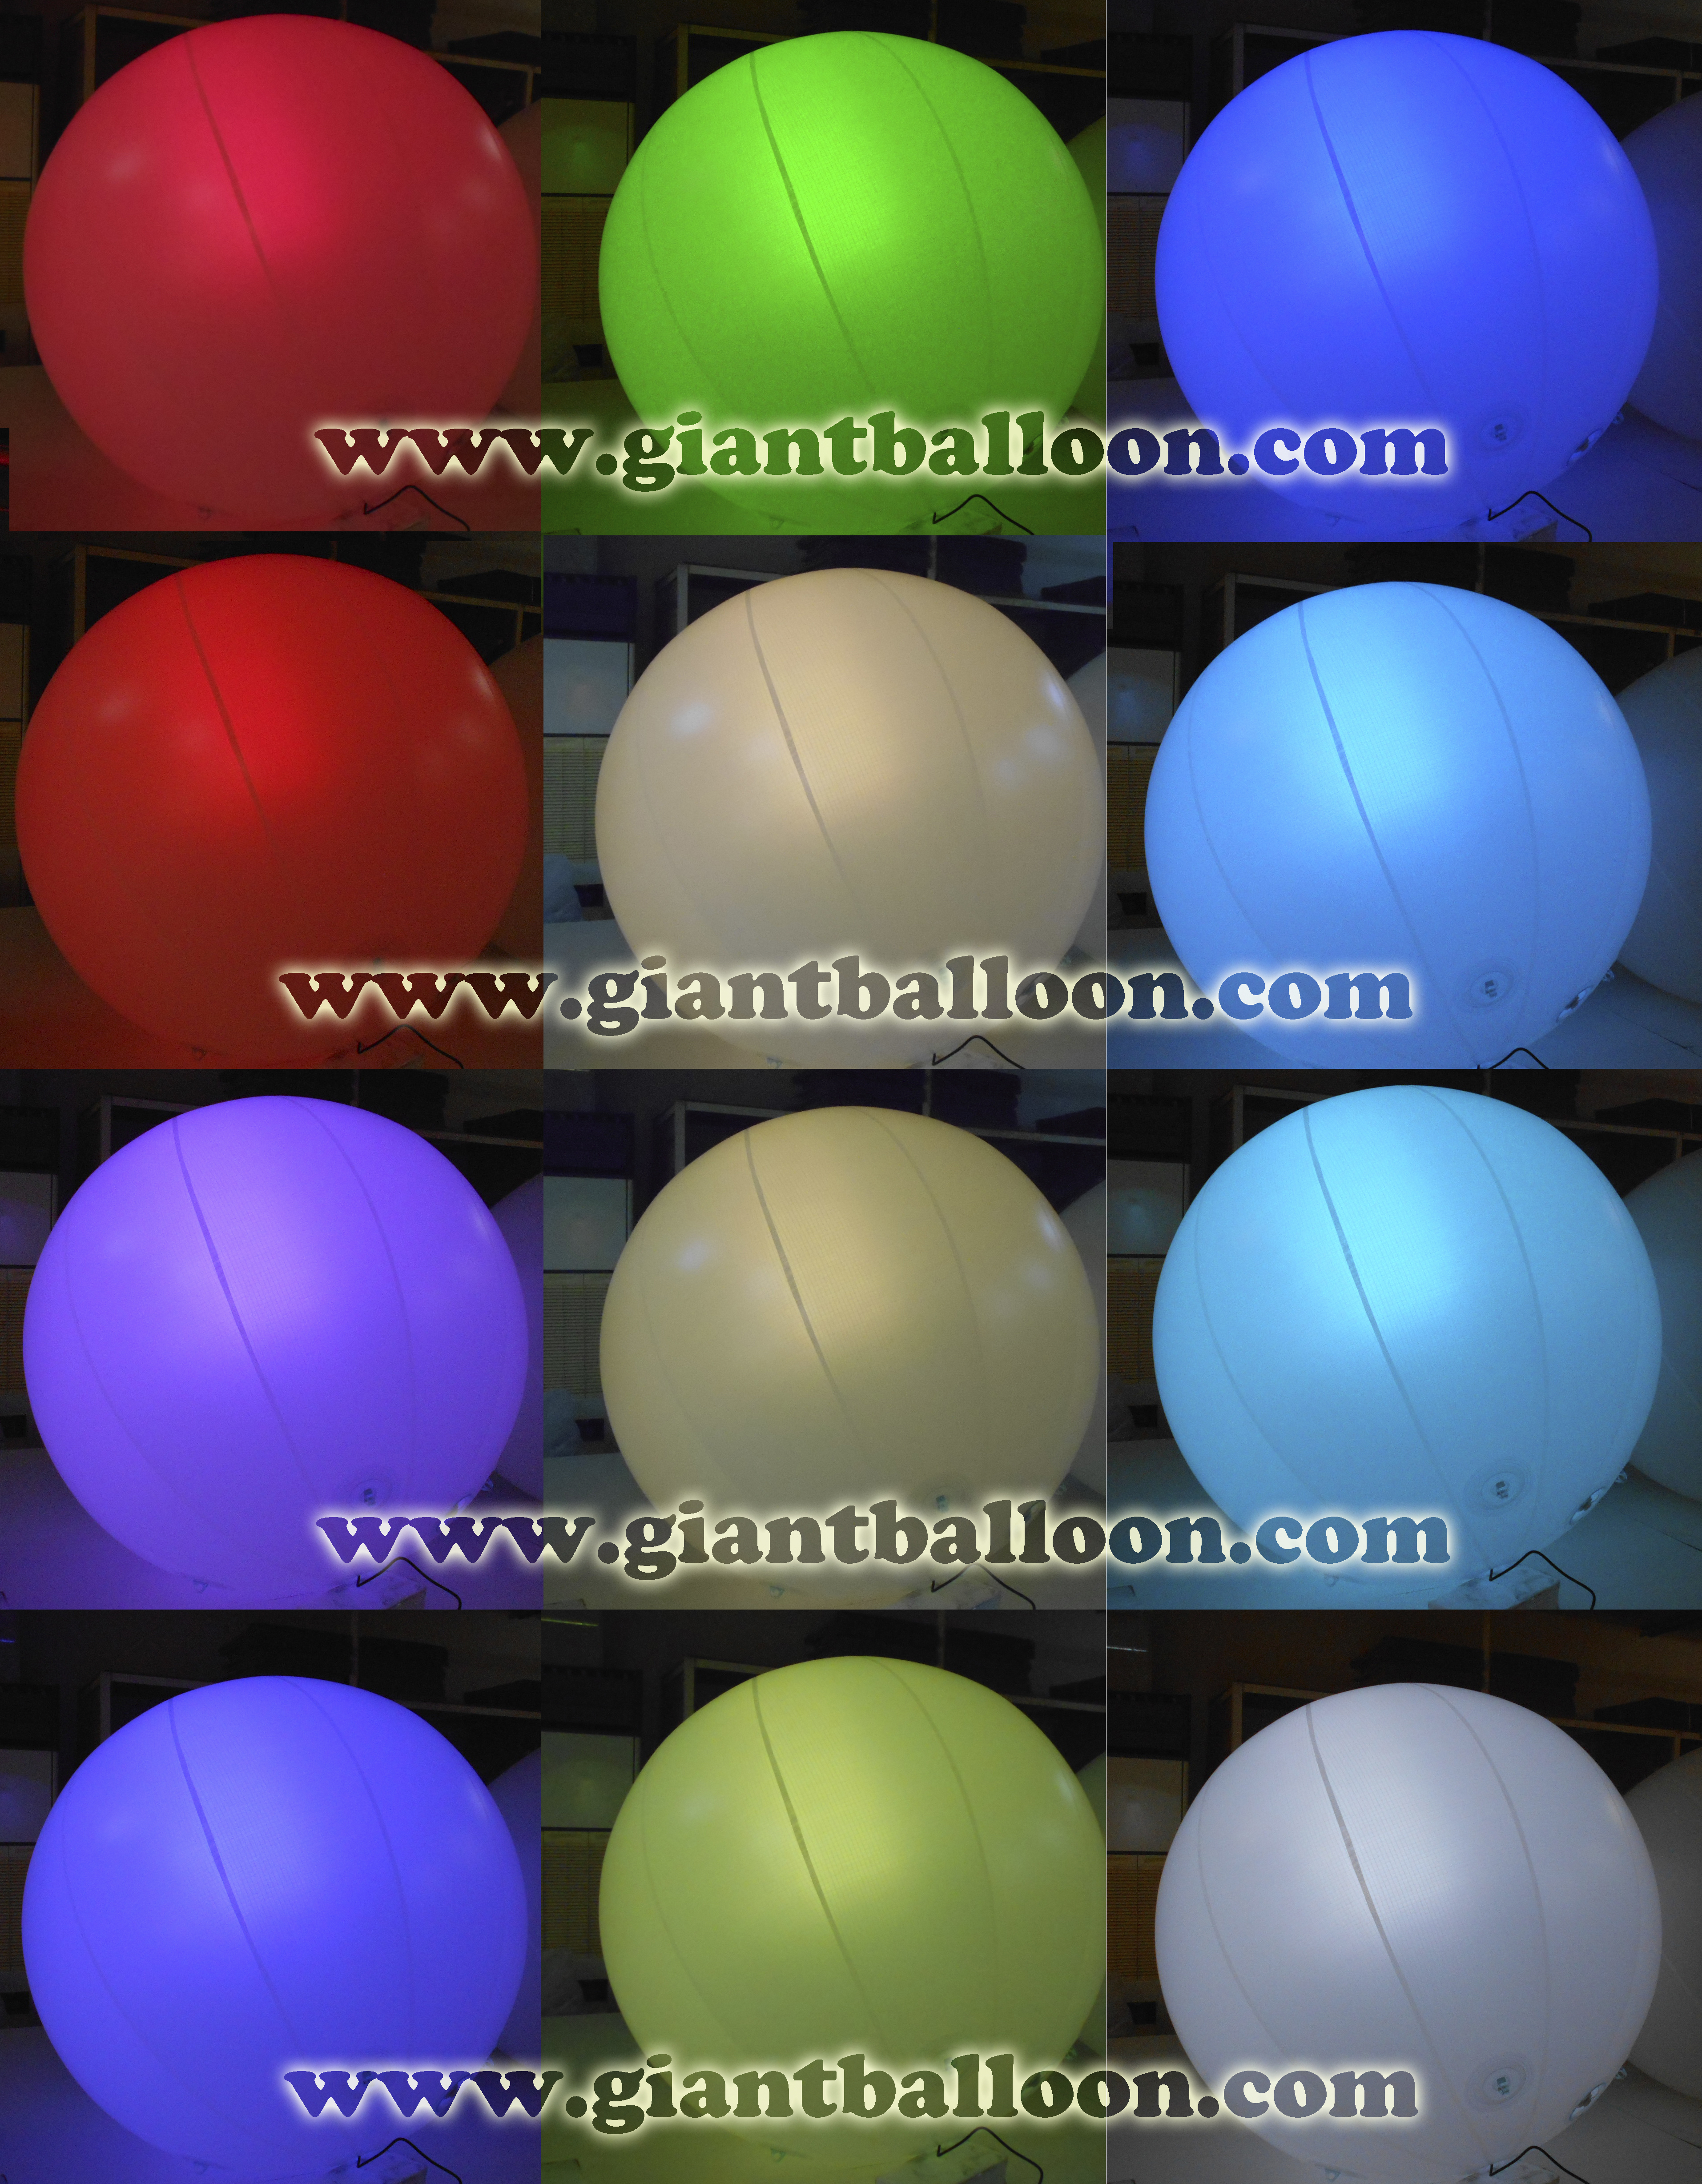 multicolored-LED-balloon